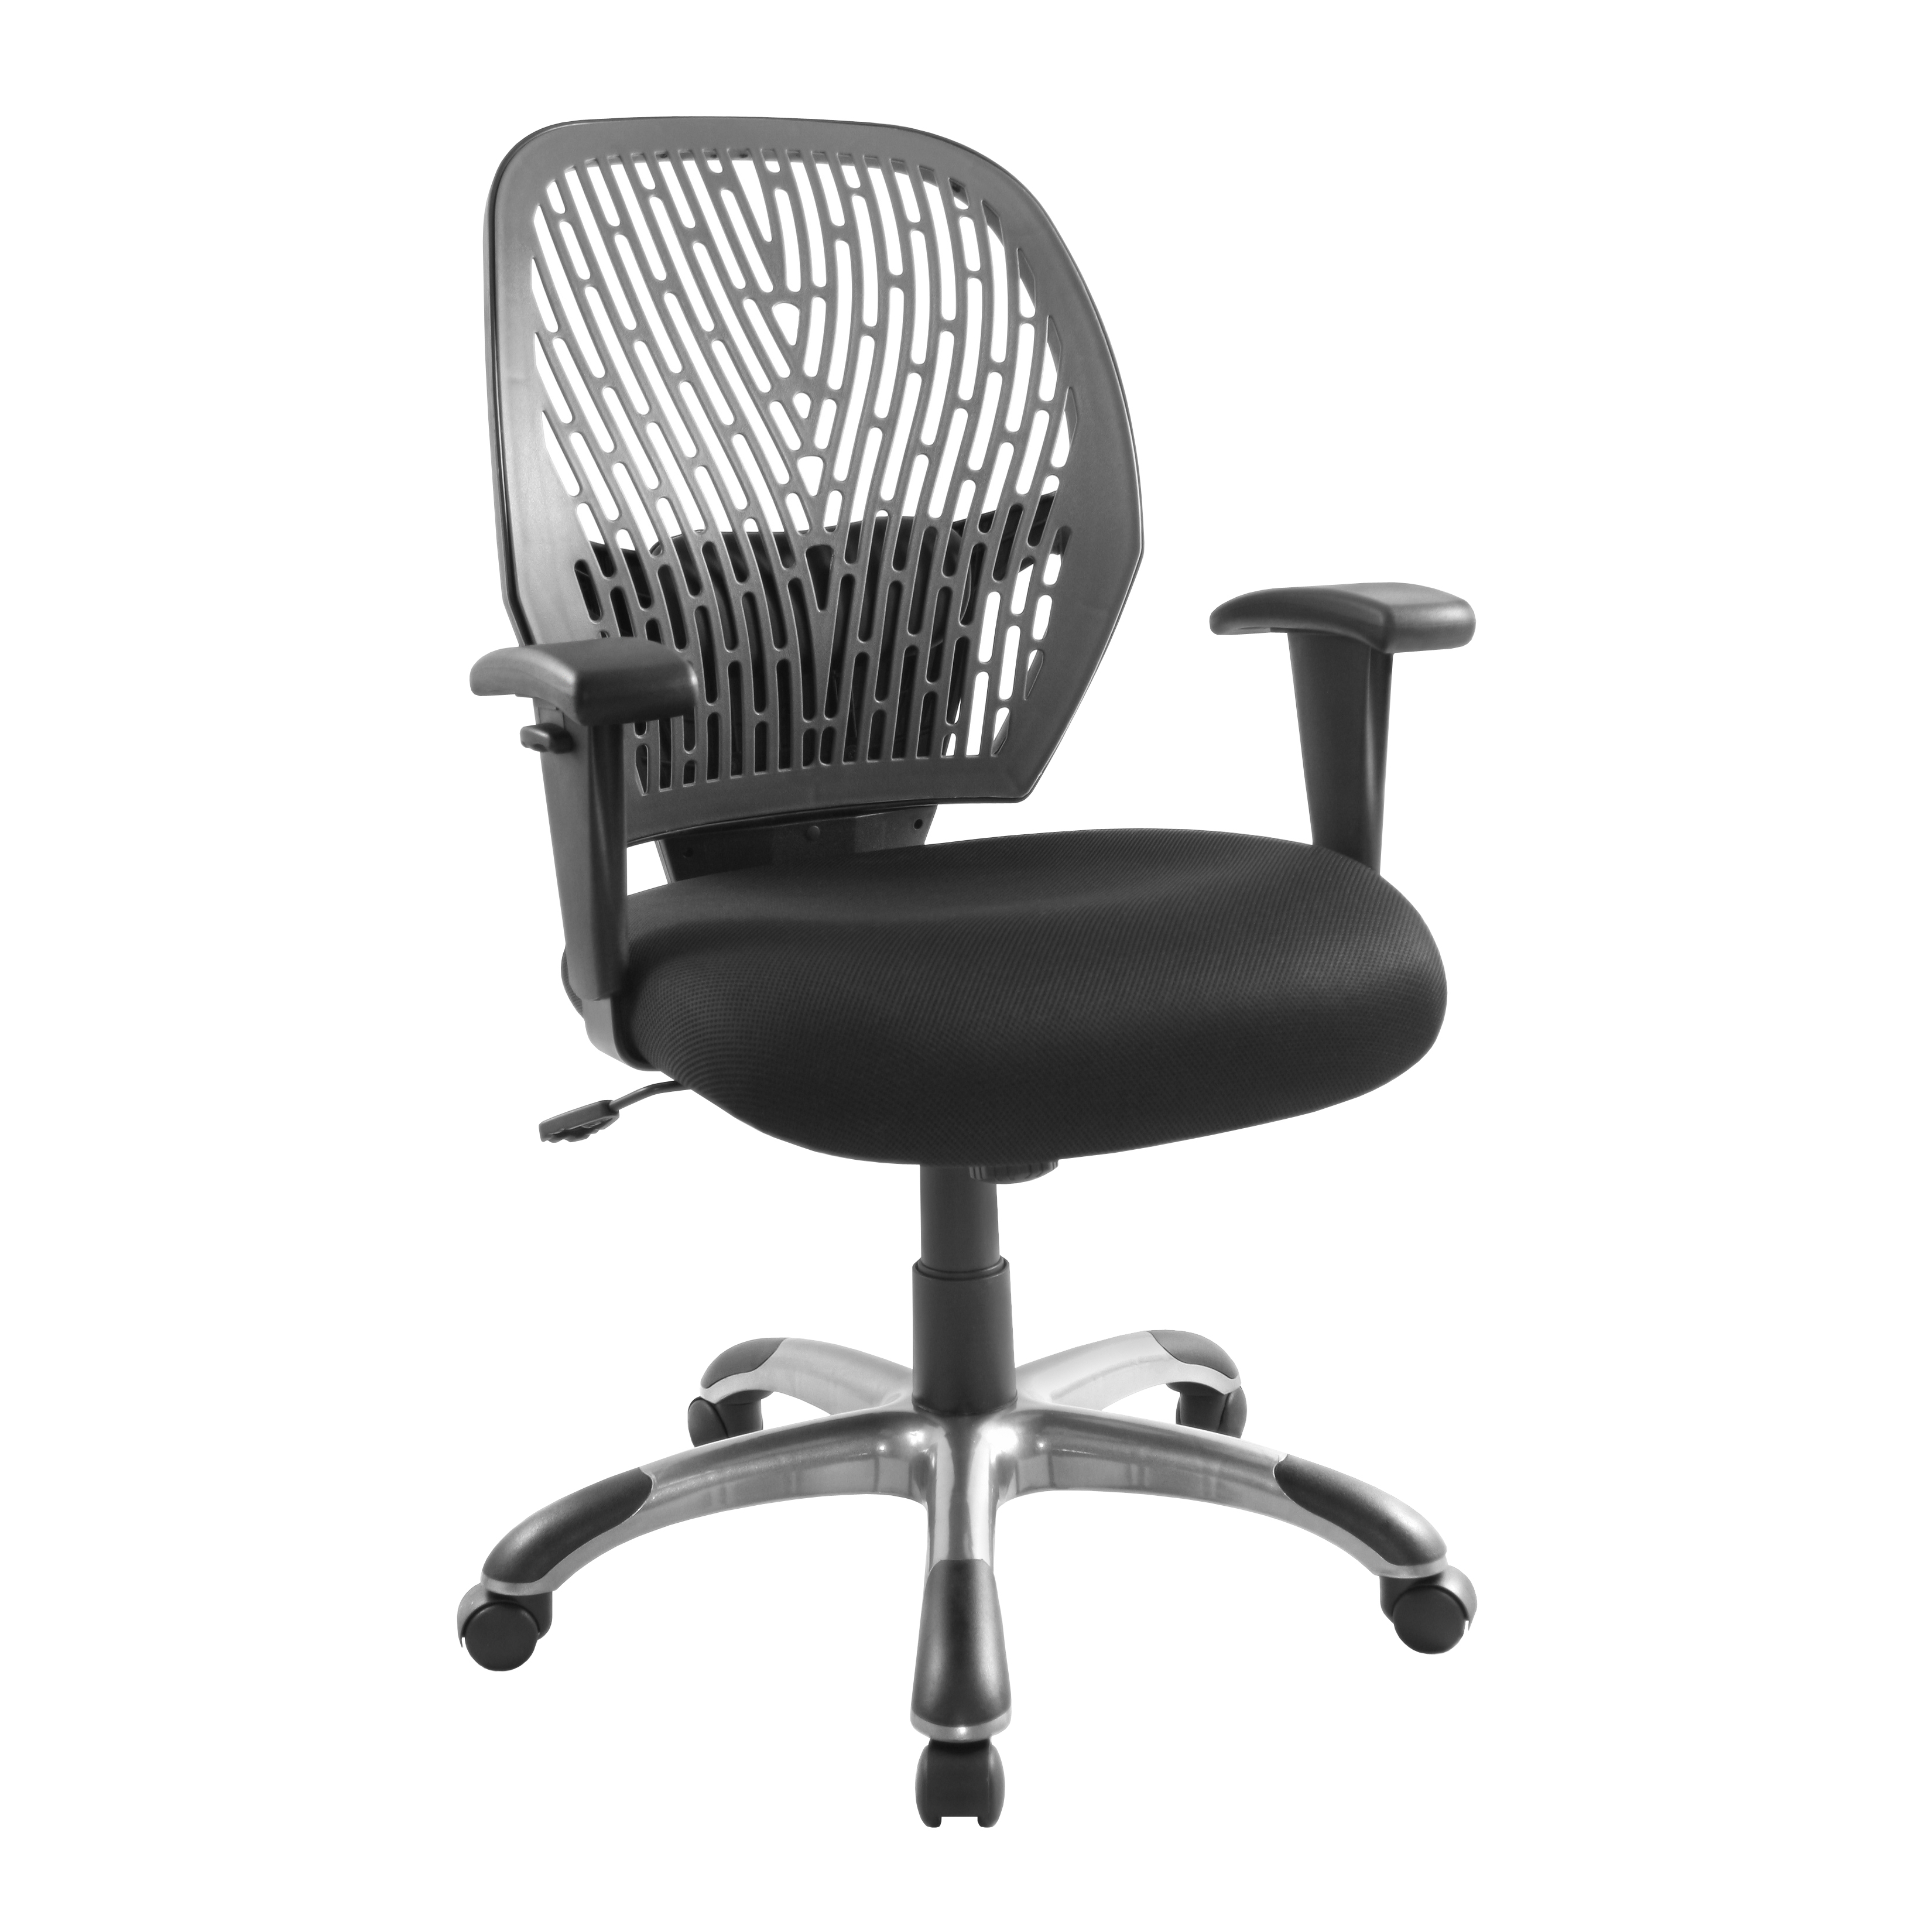 Asda Office Chair D60 On Perfect Home Remodeling Ideas With Asda throughout sizing 3300 X 3300